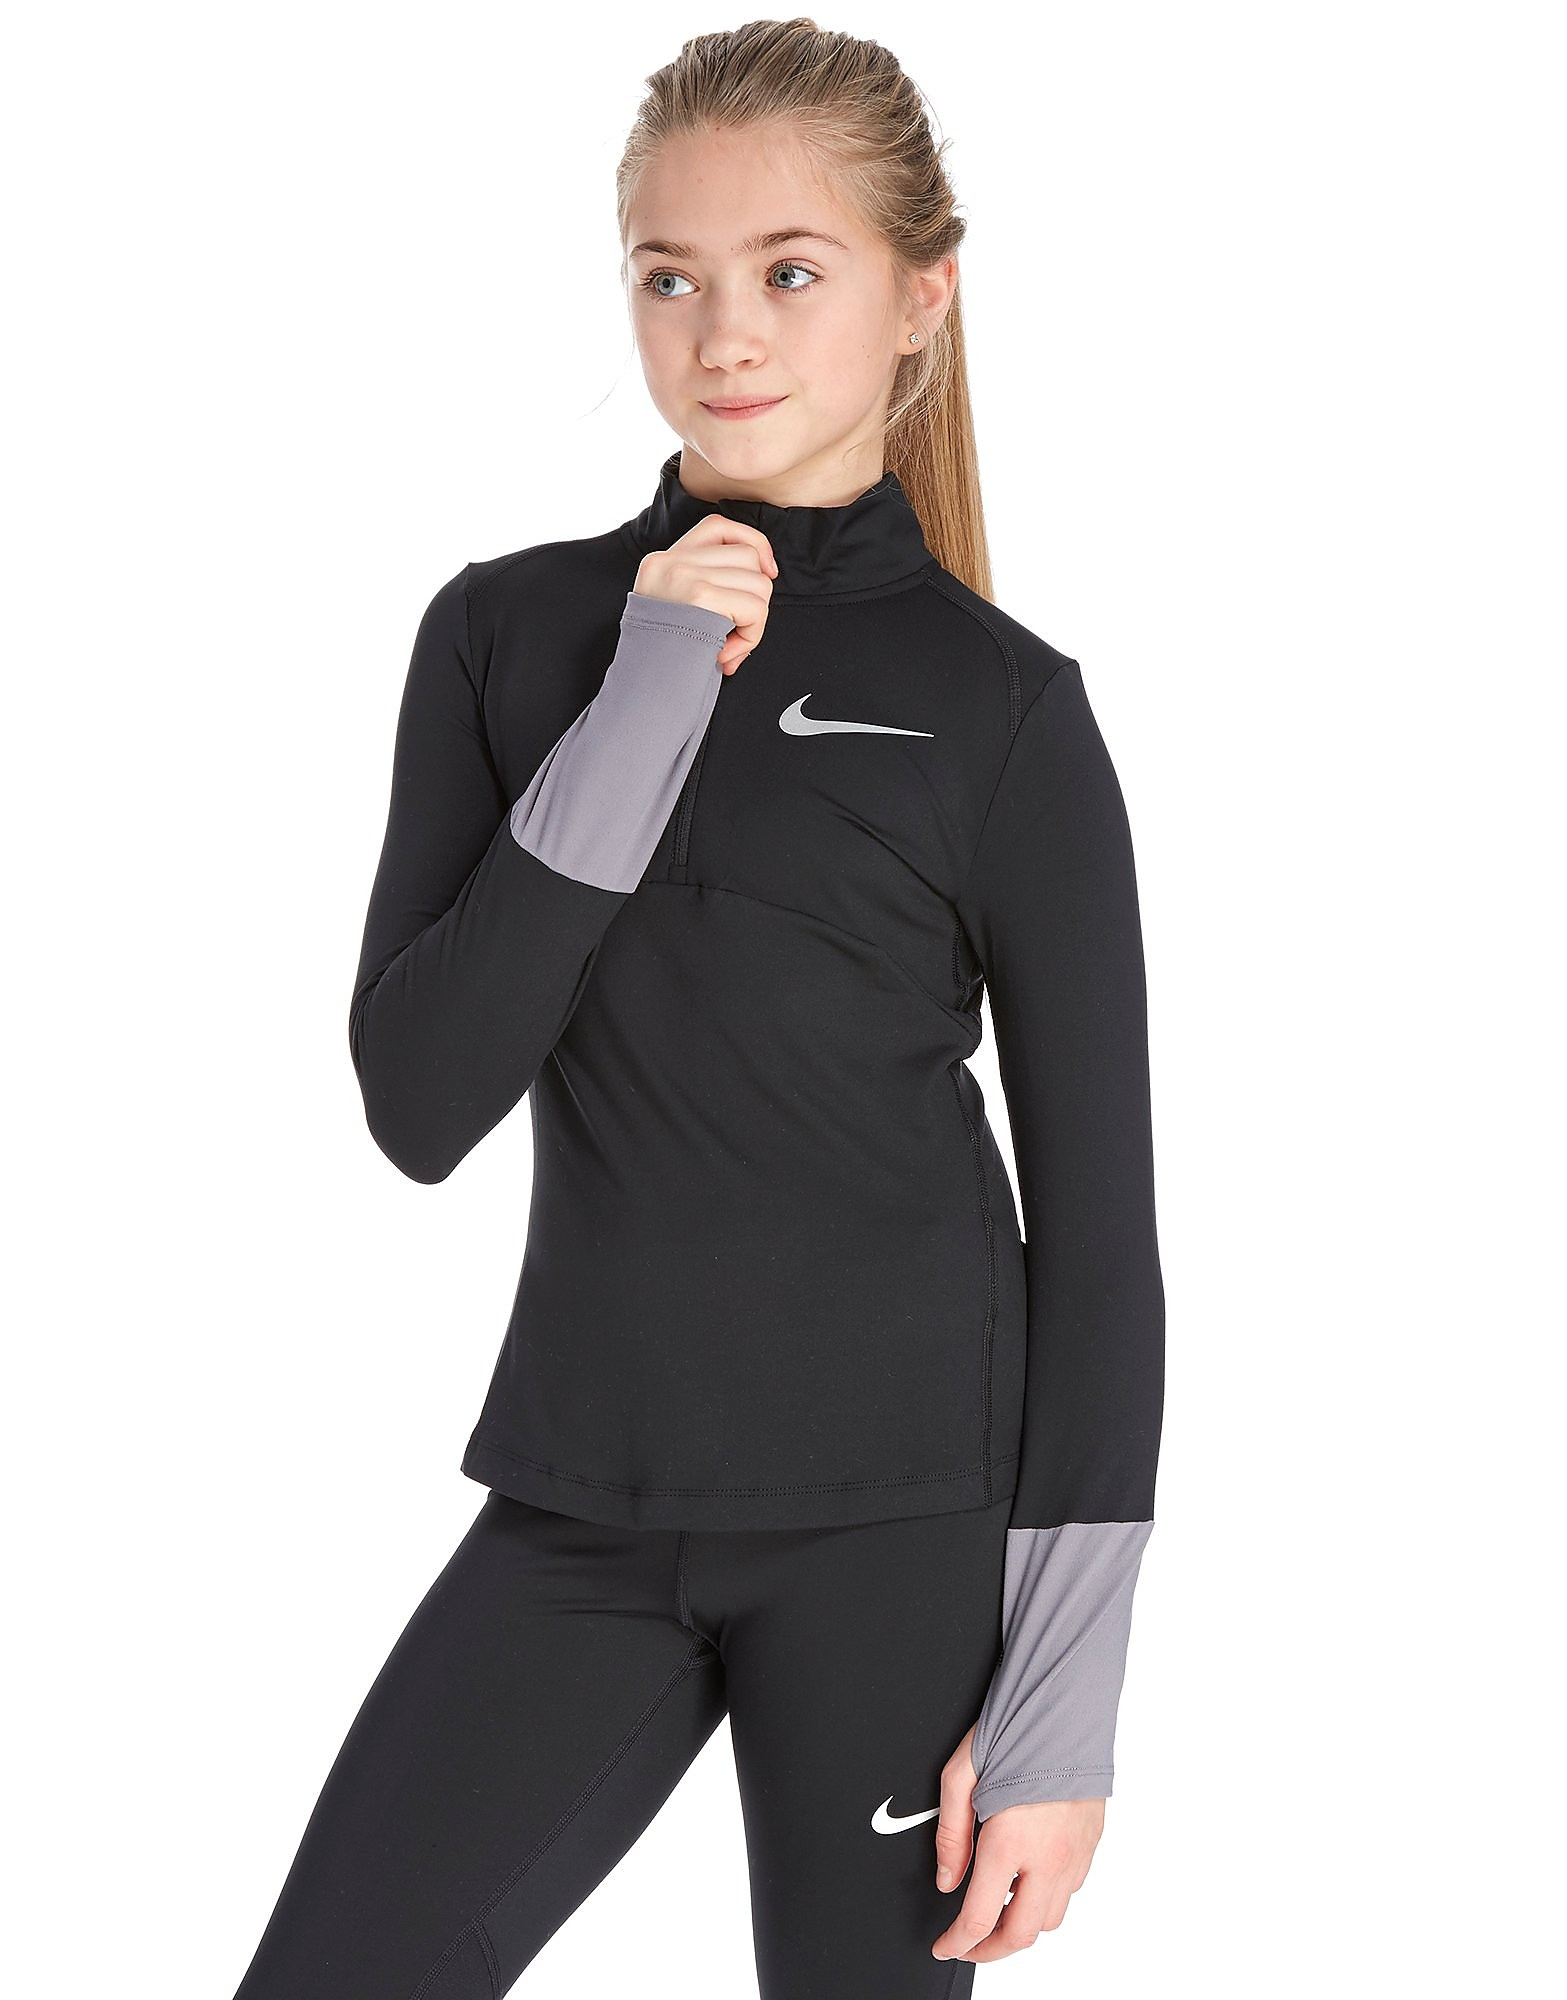 Nike Girls' 1/4 Zip Element Running Top Junior